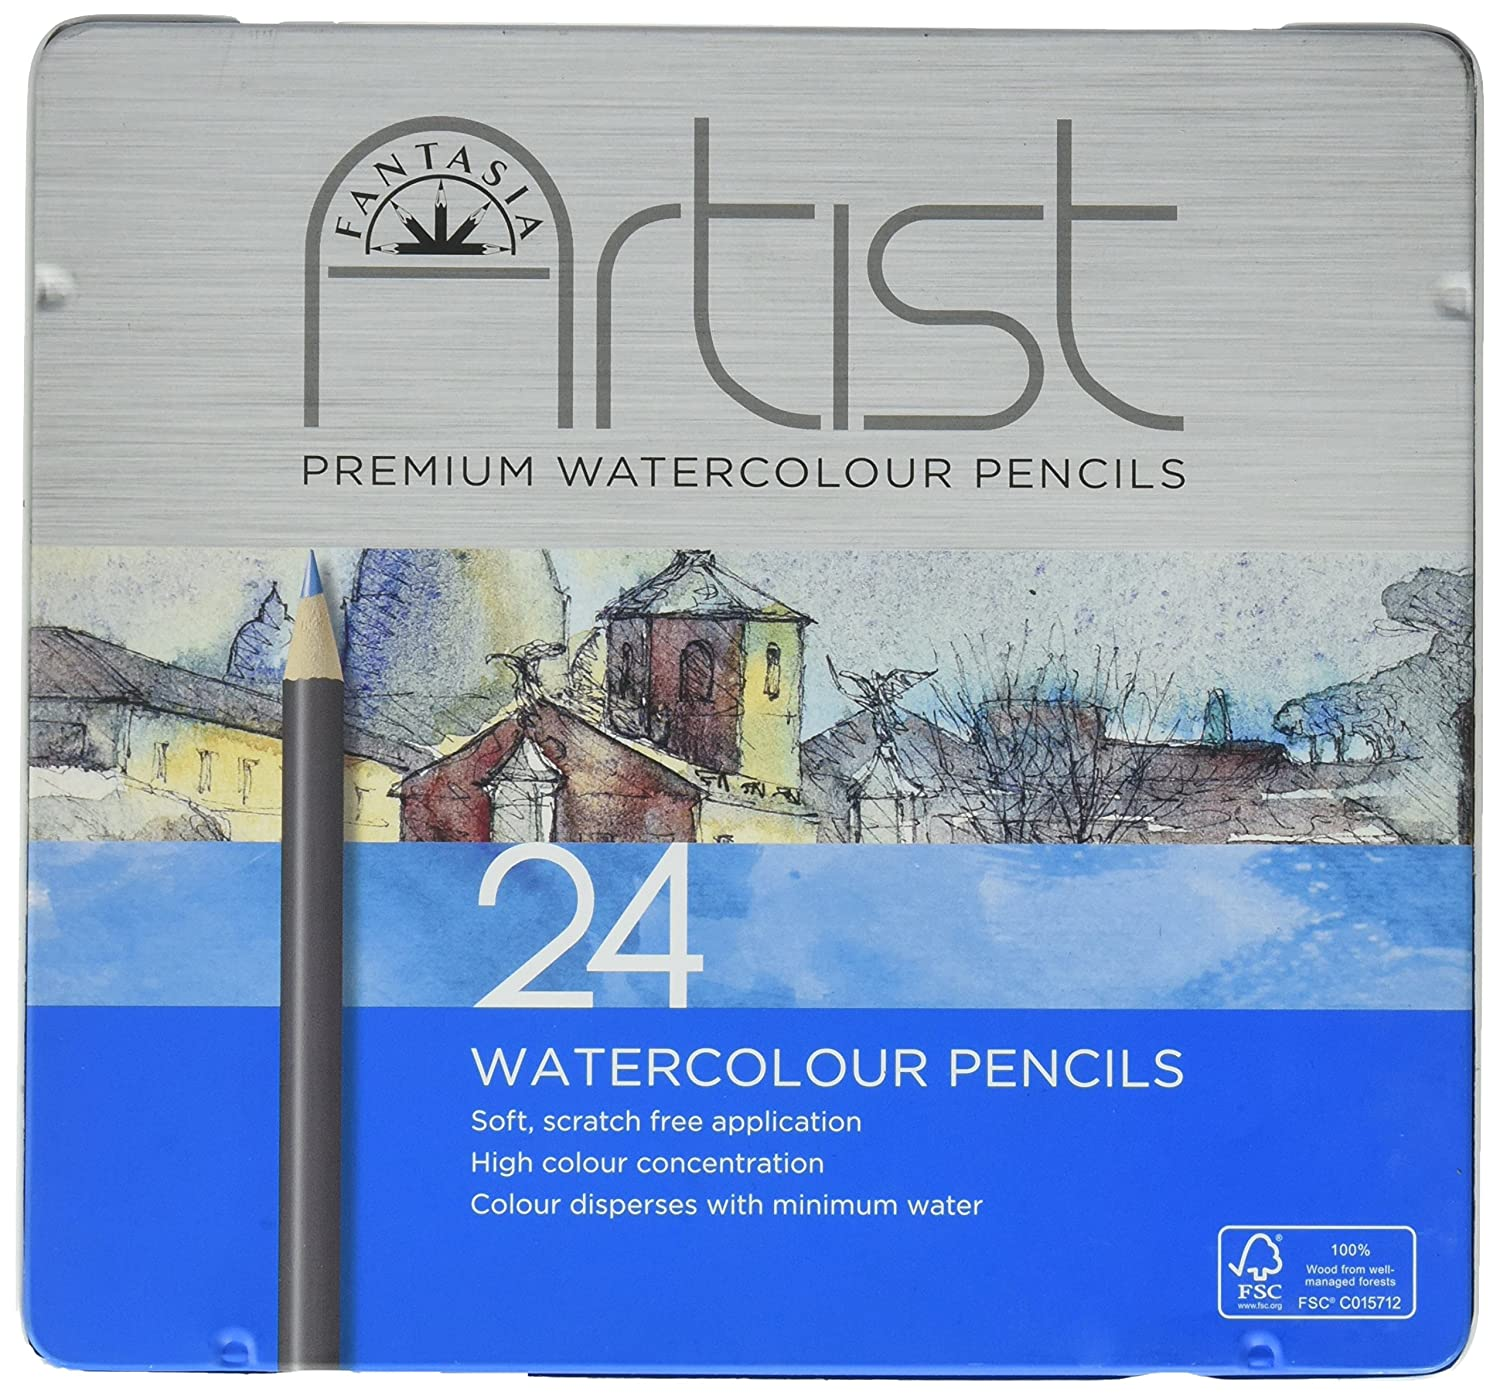 Pro-Art Fantasia Premium Watercolor Pencil Set 24pc-, Other, Multicoloured Notions Marketing 601320